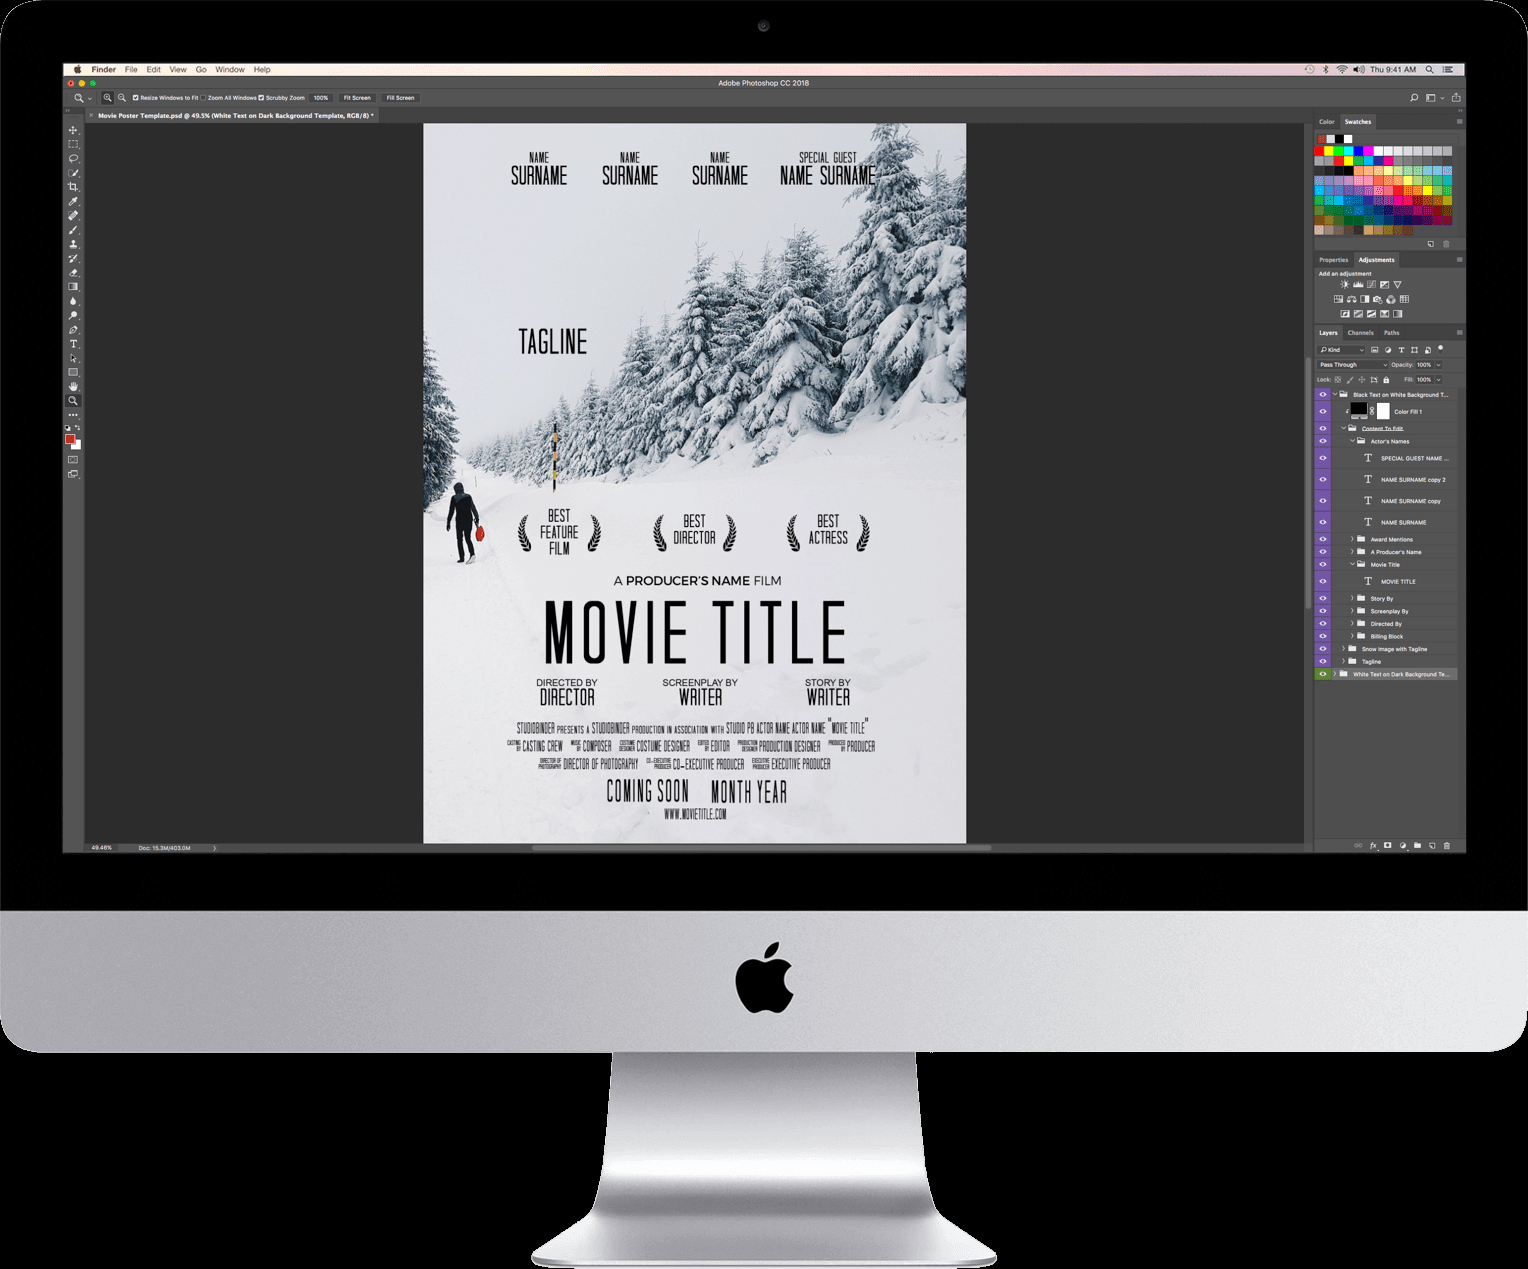 Free Movie Poster Template Luxury Download Your Free Movie Poster Template for Shop